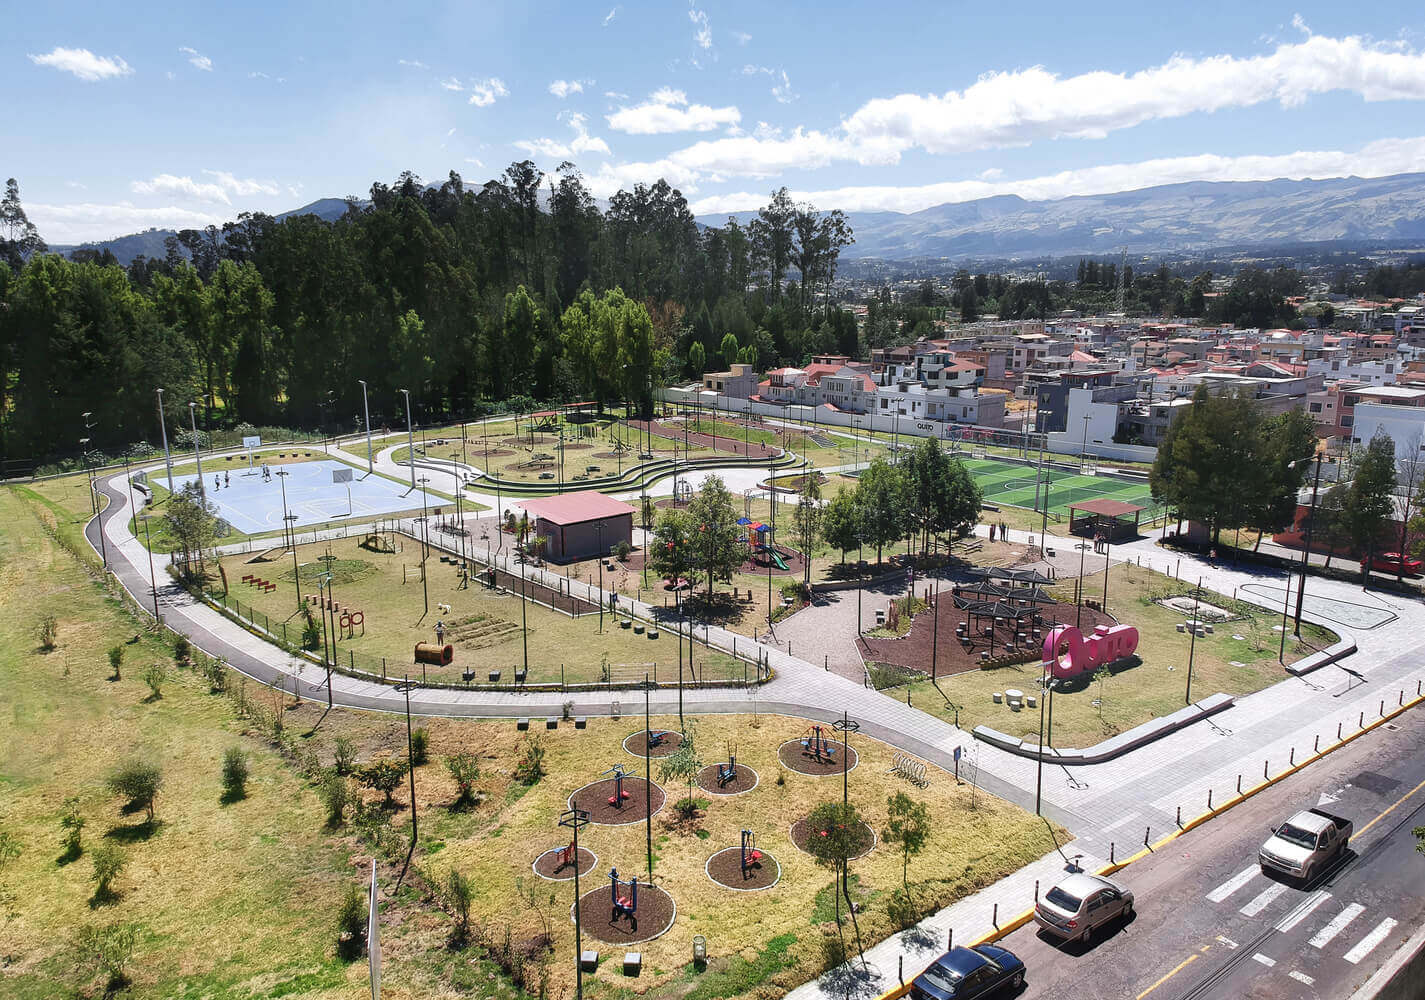 Parque 6 de Junio - Safe Public Space